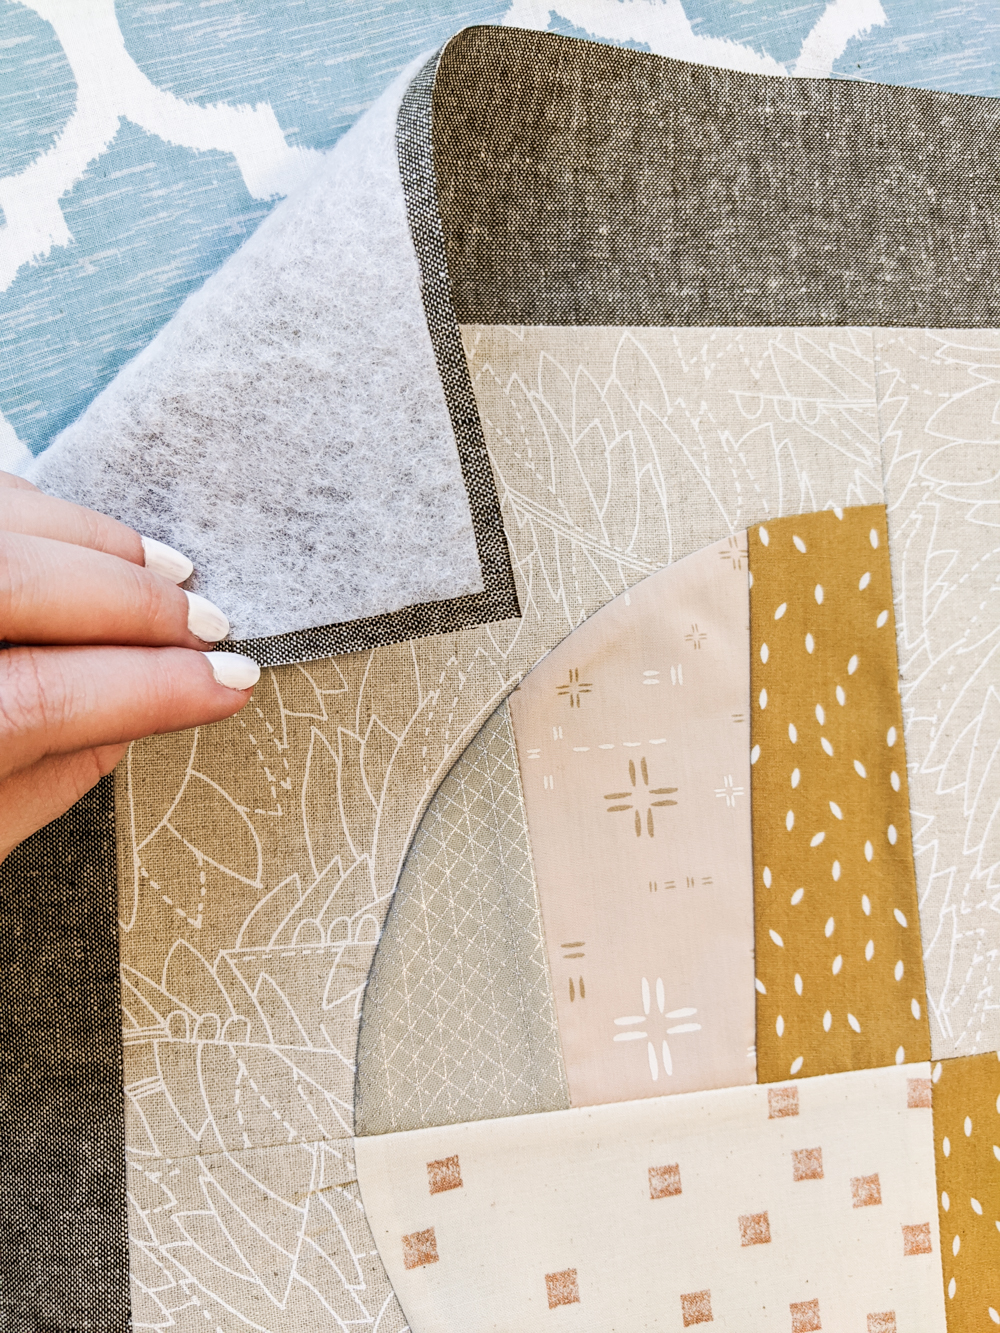 This FREE quilted tote bag tutorial shows step by step how to create a large tote bag using the Modern Fans quilt block pattern. suzyquilts.com #quilting